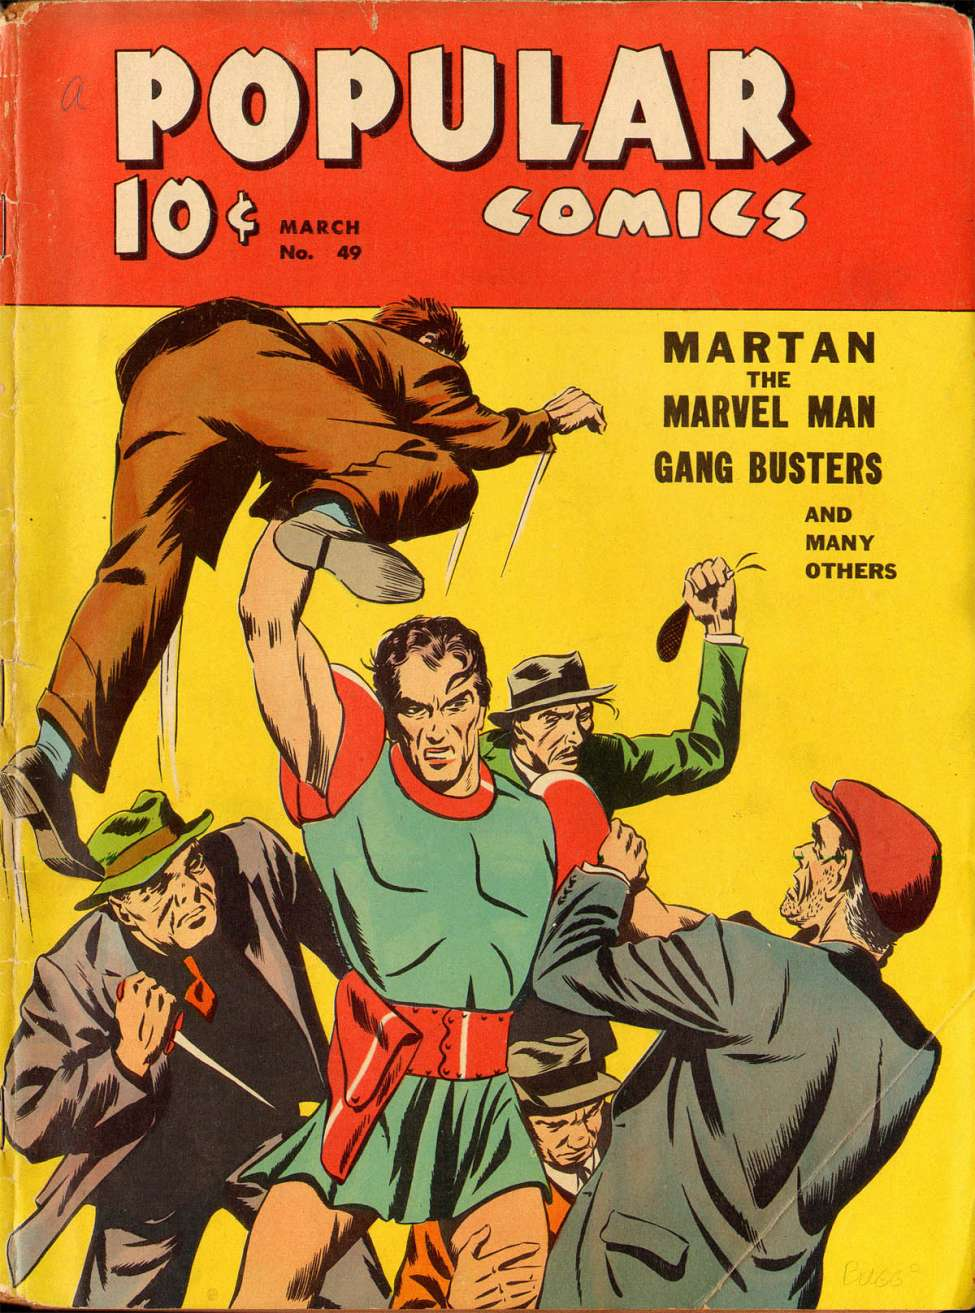 Comic Book Cover For Popular Comics #49